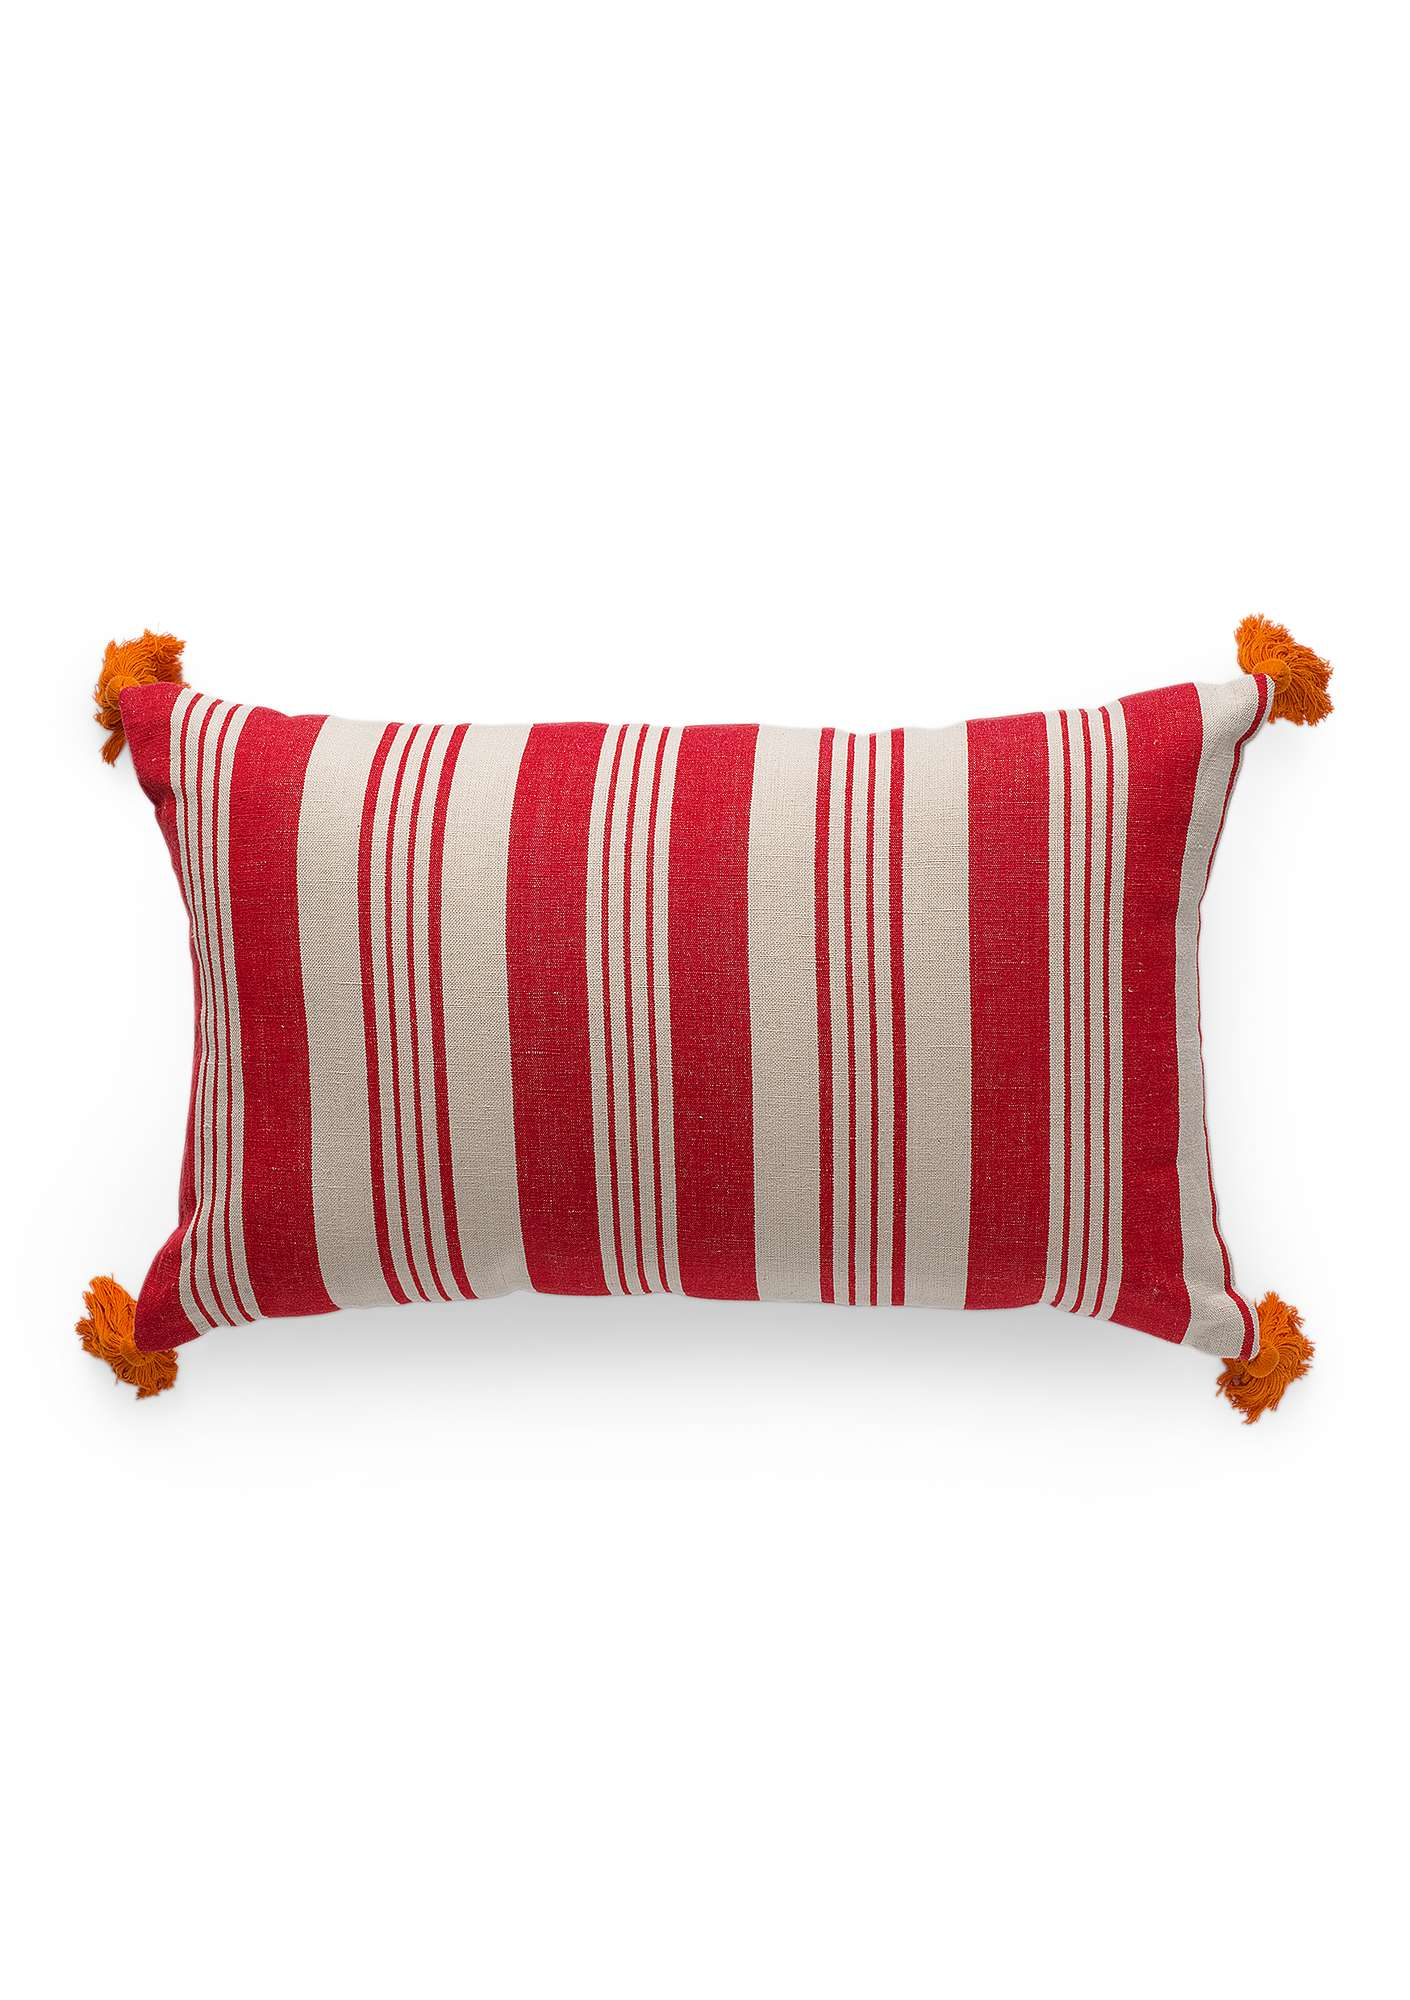 """Bolster"" cotton/linen cushion bright red"